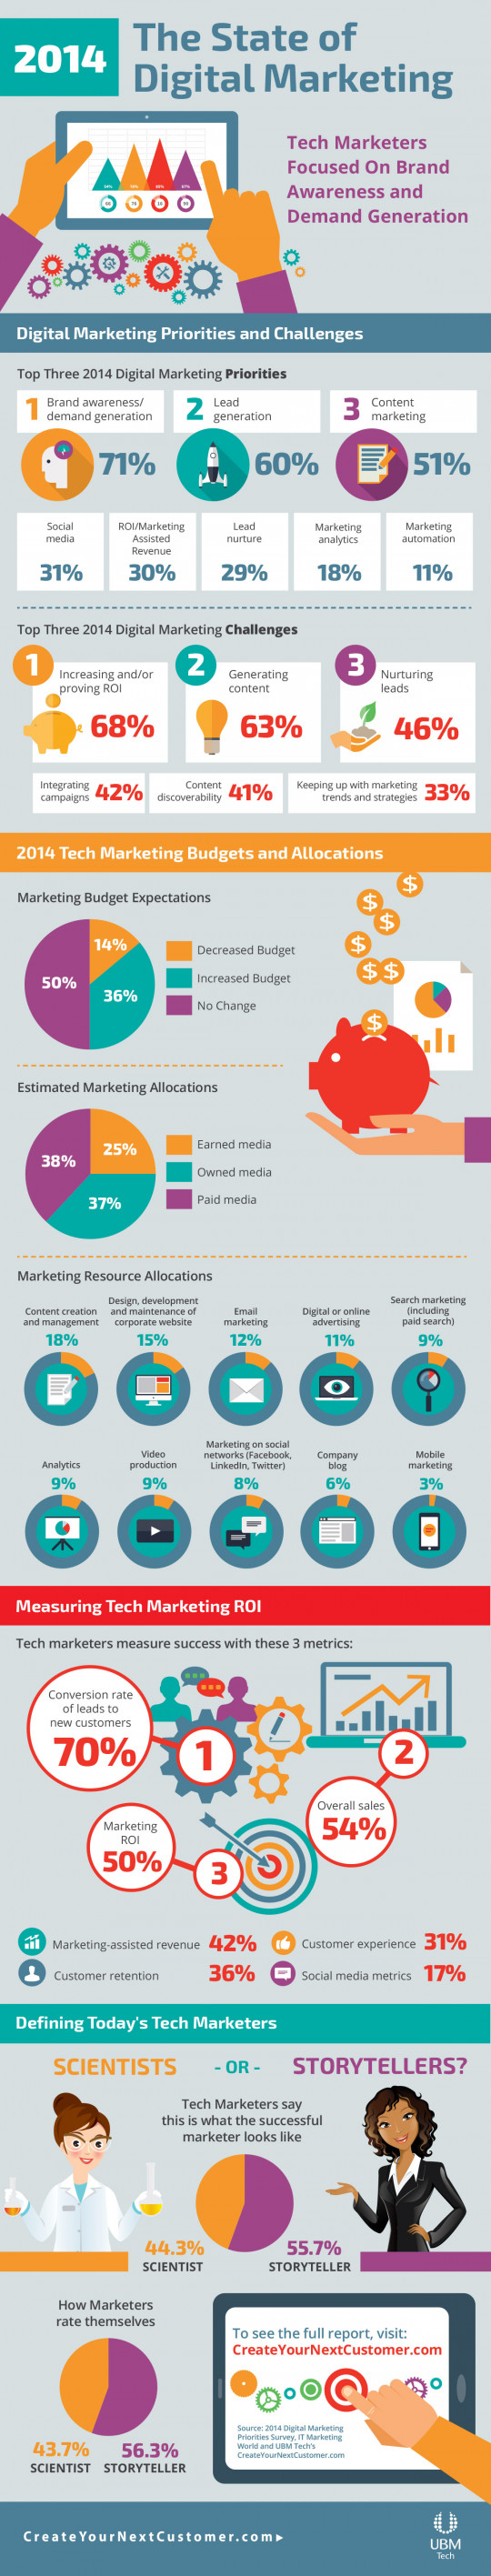 The State of Digital Marketing